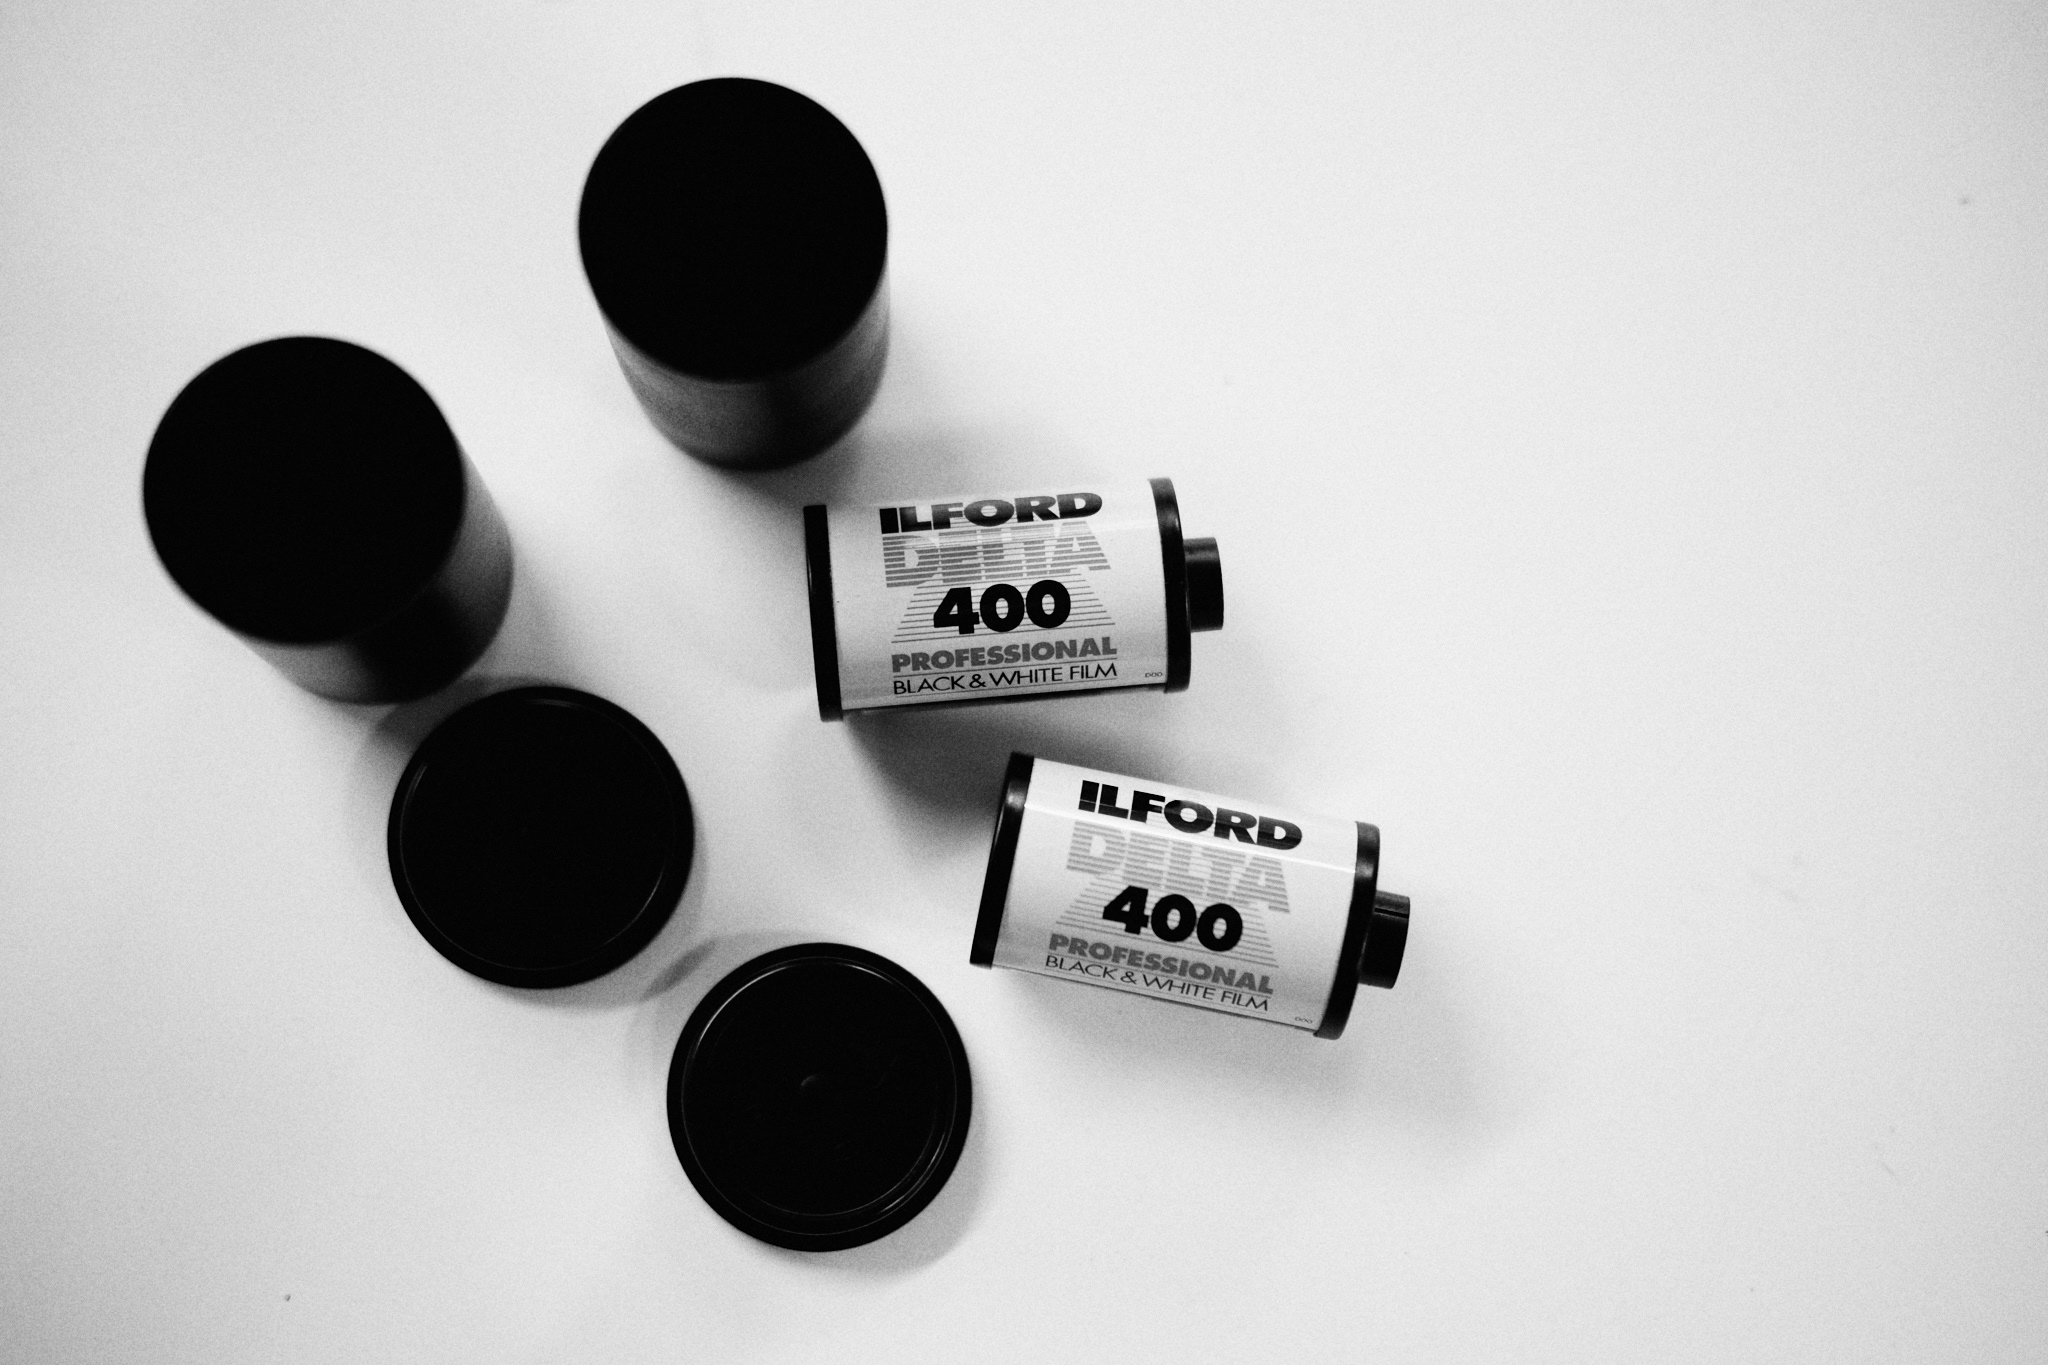 Two rolls of Ilford Delta 400